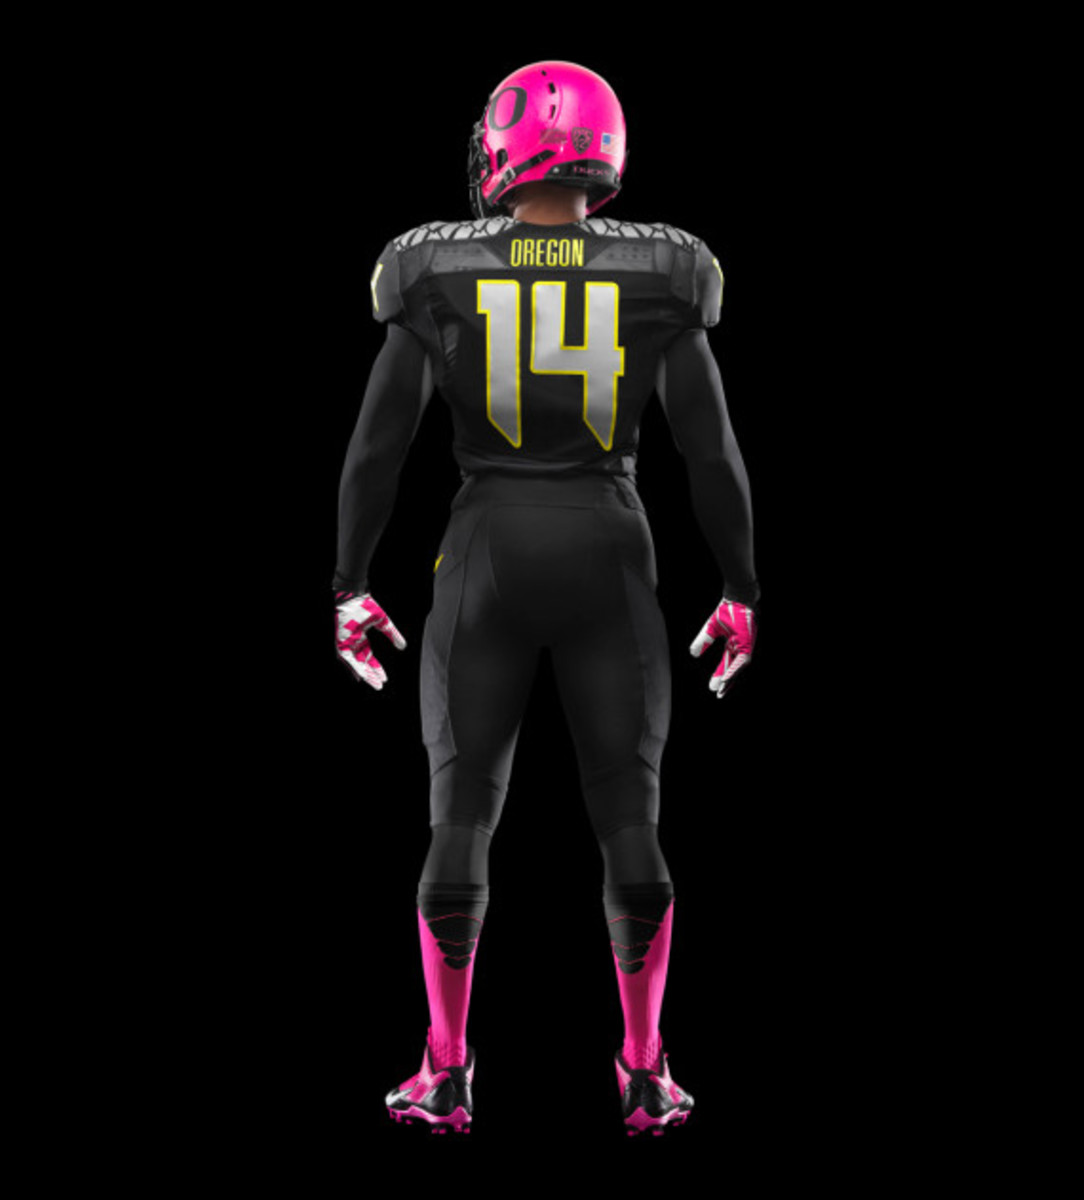 nike-oregon-ducks-football-pays-tribute-to-breast-cancer-awareness-05